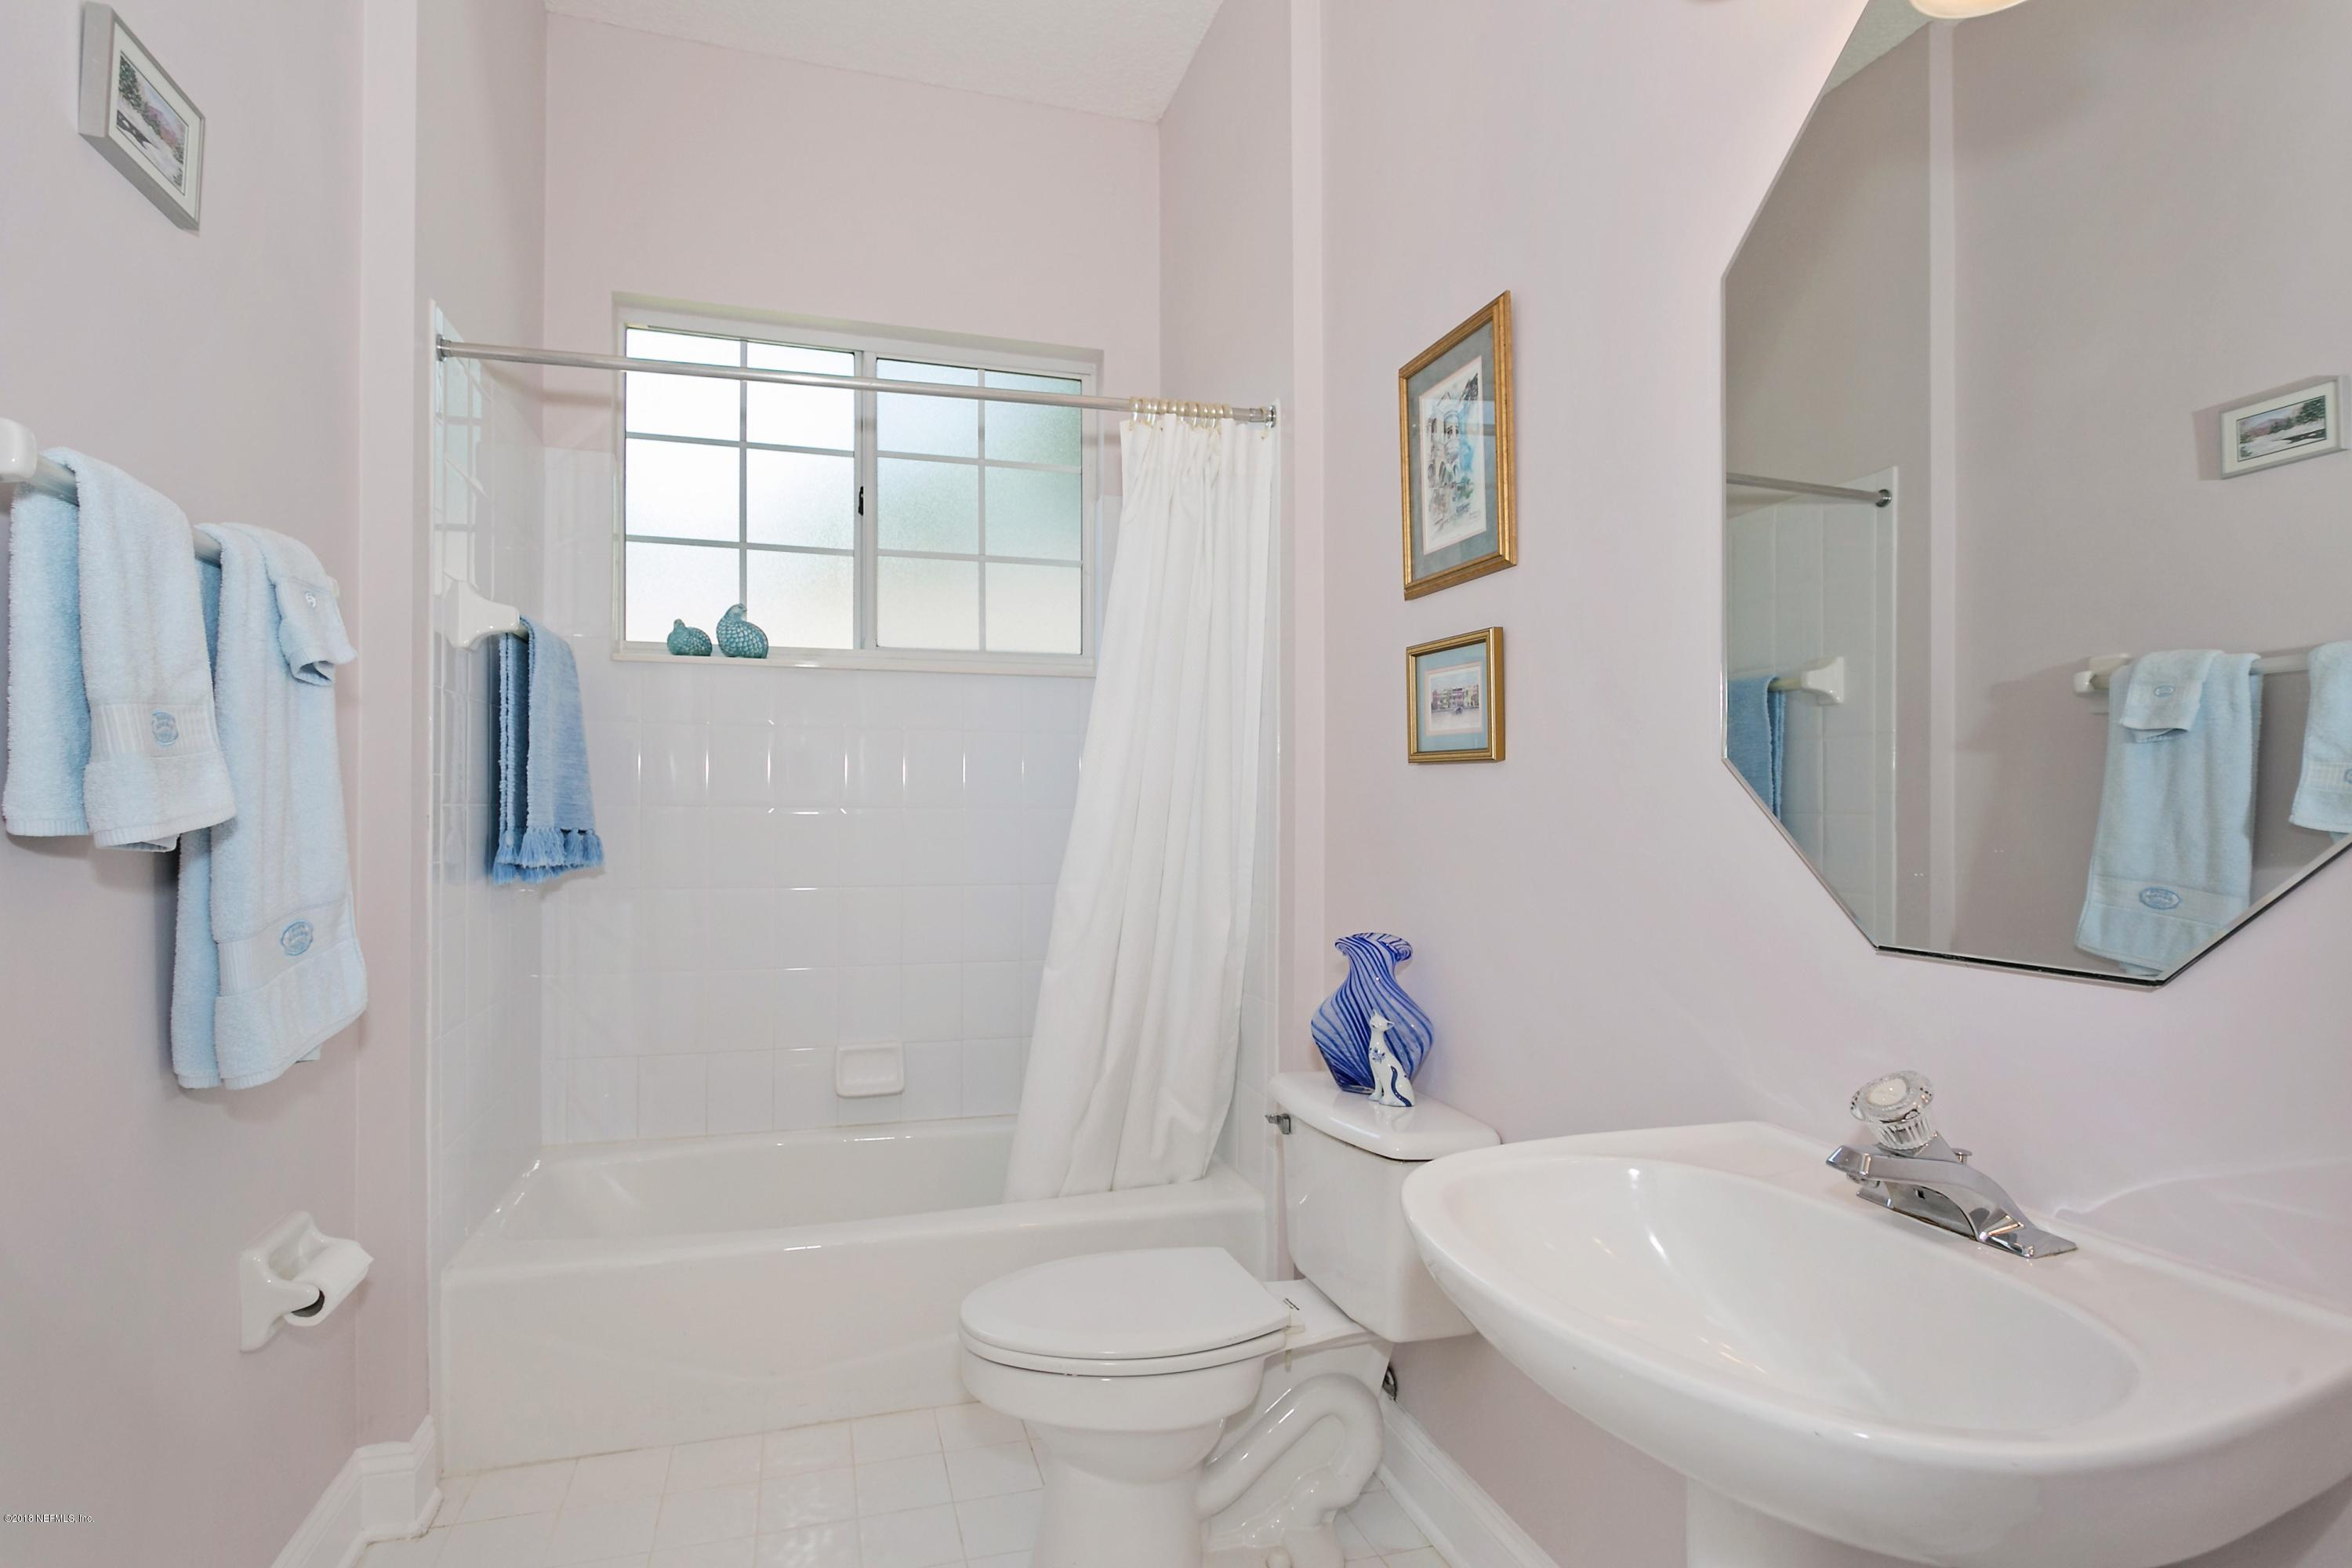 1318 WINDSOR HARBOR, JACKSONVILLE, FLORIDA 32225, 5 Bedrooms Bedrooms, ,4 BathroomsBathrooms,Residential - single family,For sale,WINDSOR HARBOR,928626